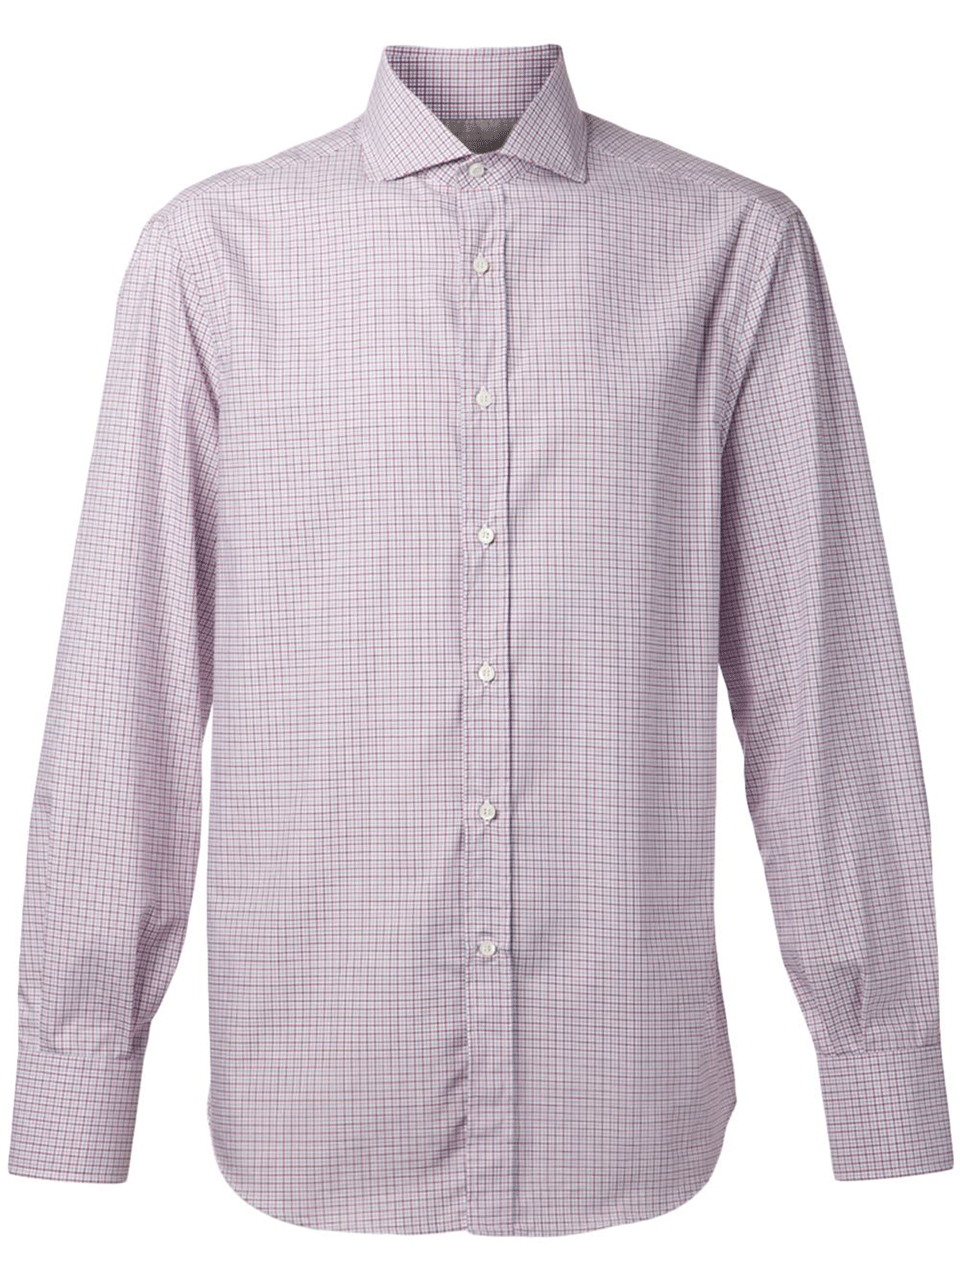 Brunello cucinelli spread collar check shirt in purple for for What is a spread collar shirt